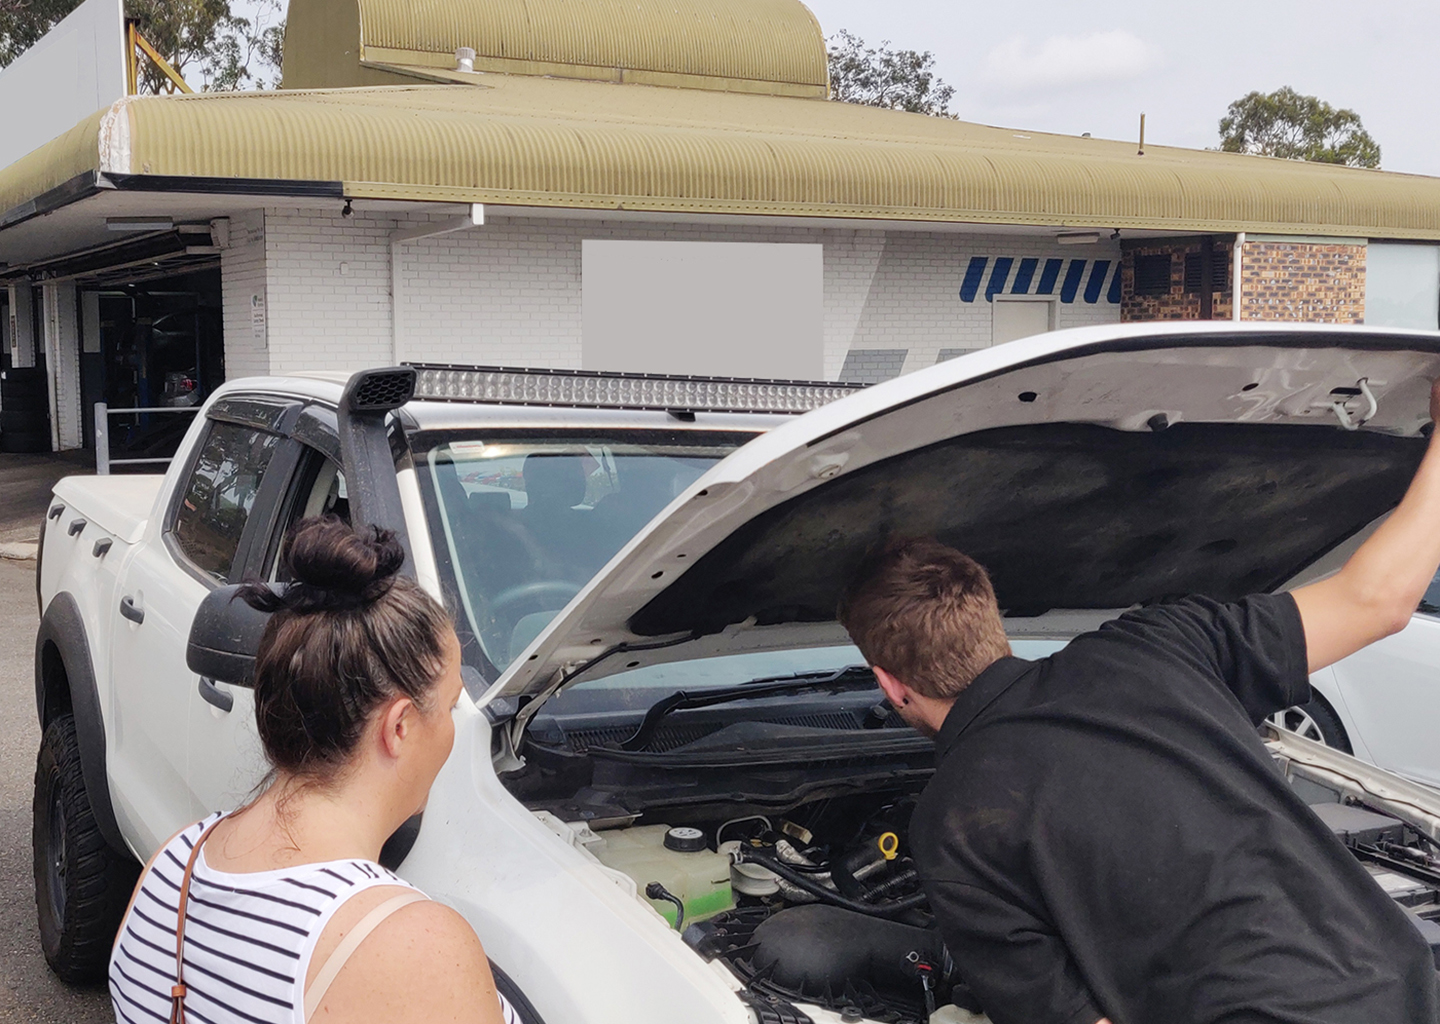 Mechanic examining a car engine as a woman looks on